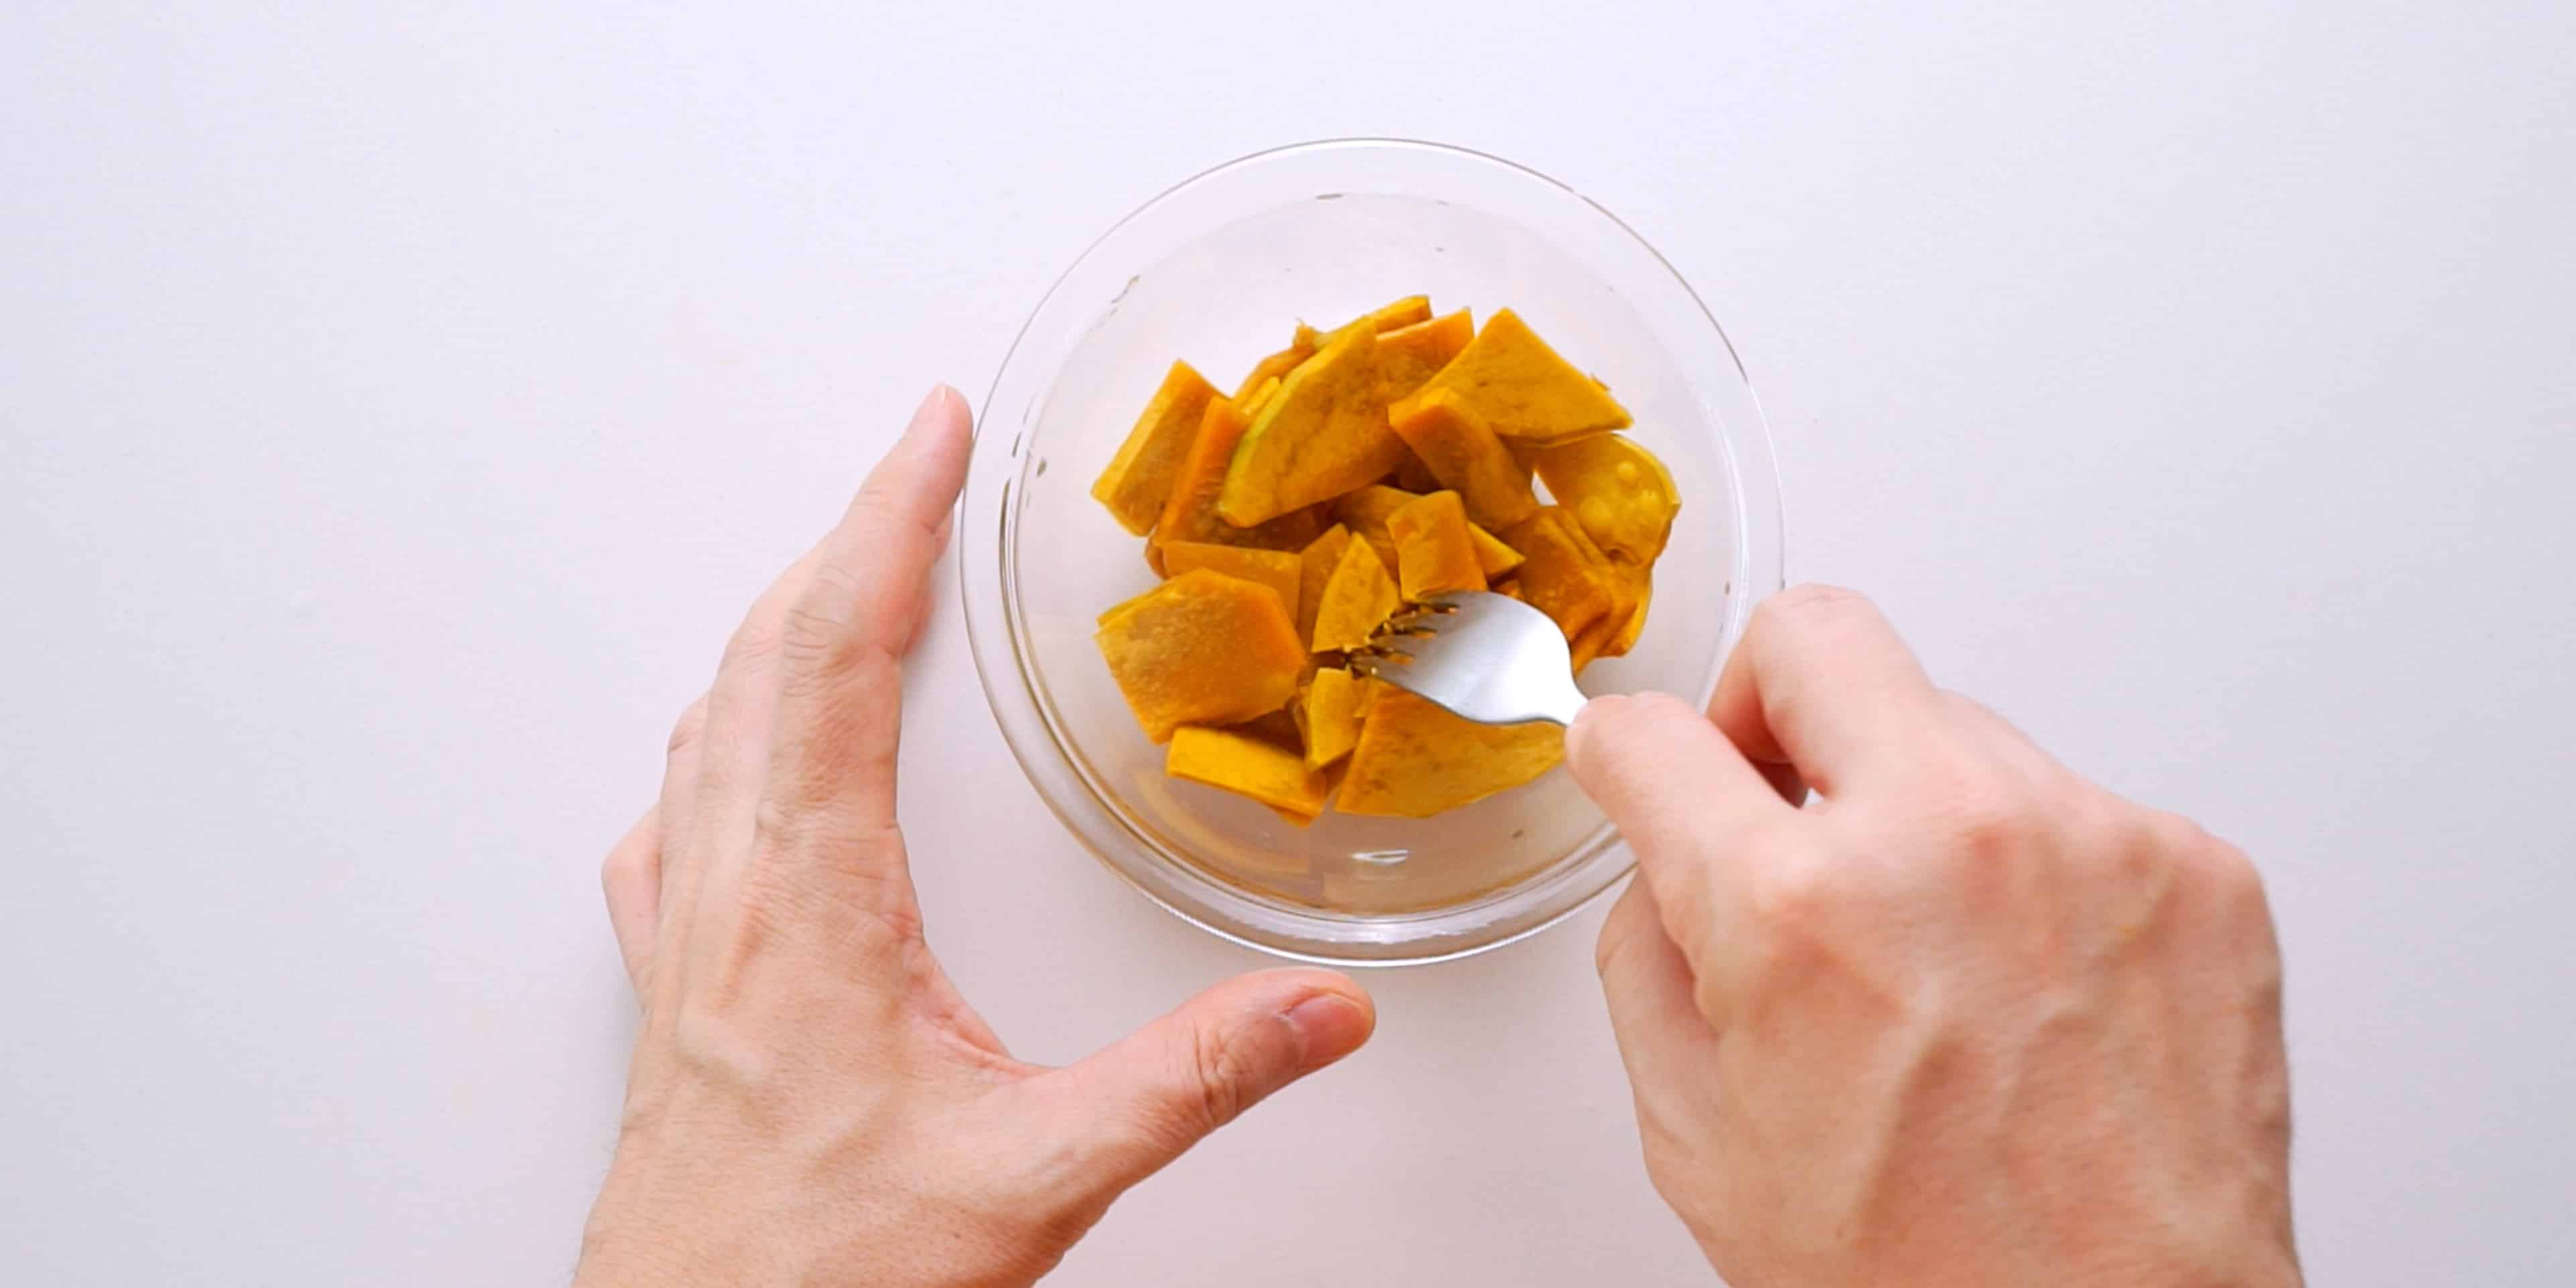 Testing steamed kabocha squash with a fork.